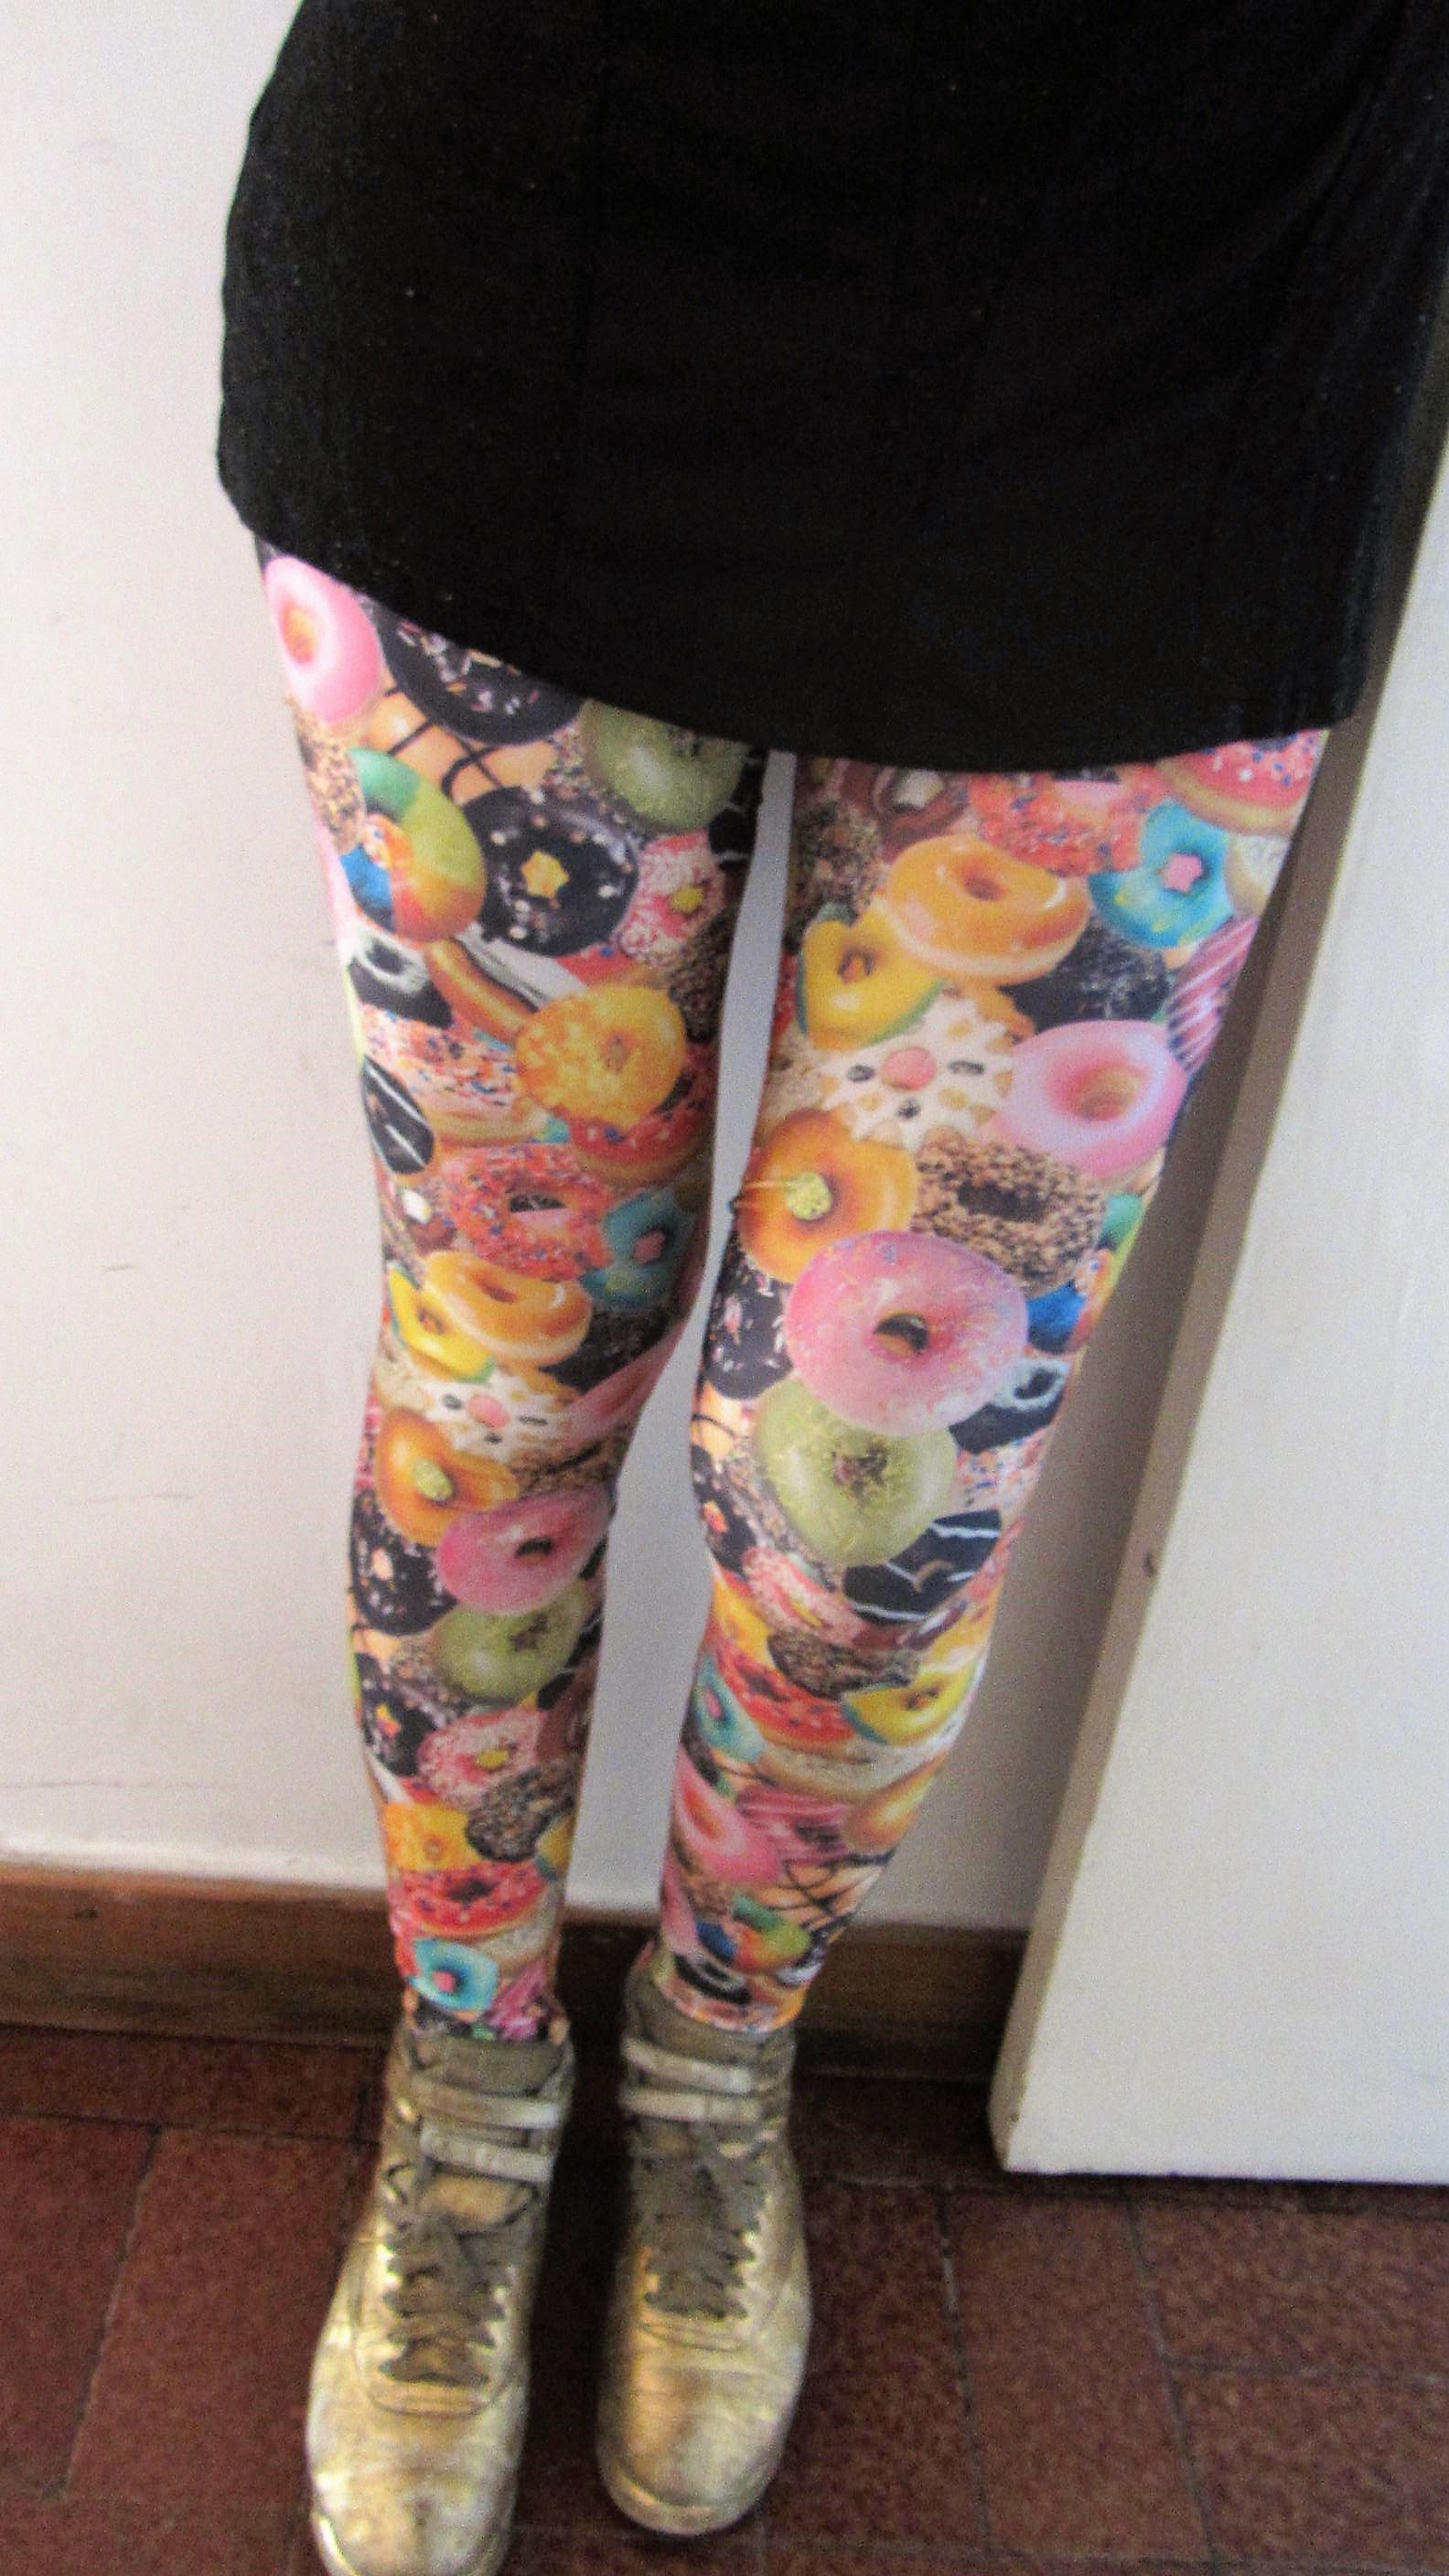 J Dilla loves Donuts Leggings | Jdilla ama las donas Leggings-Leggings-Eat me!